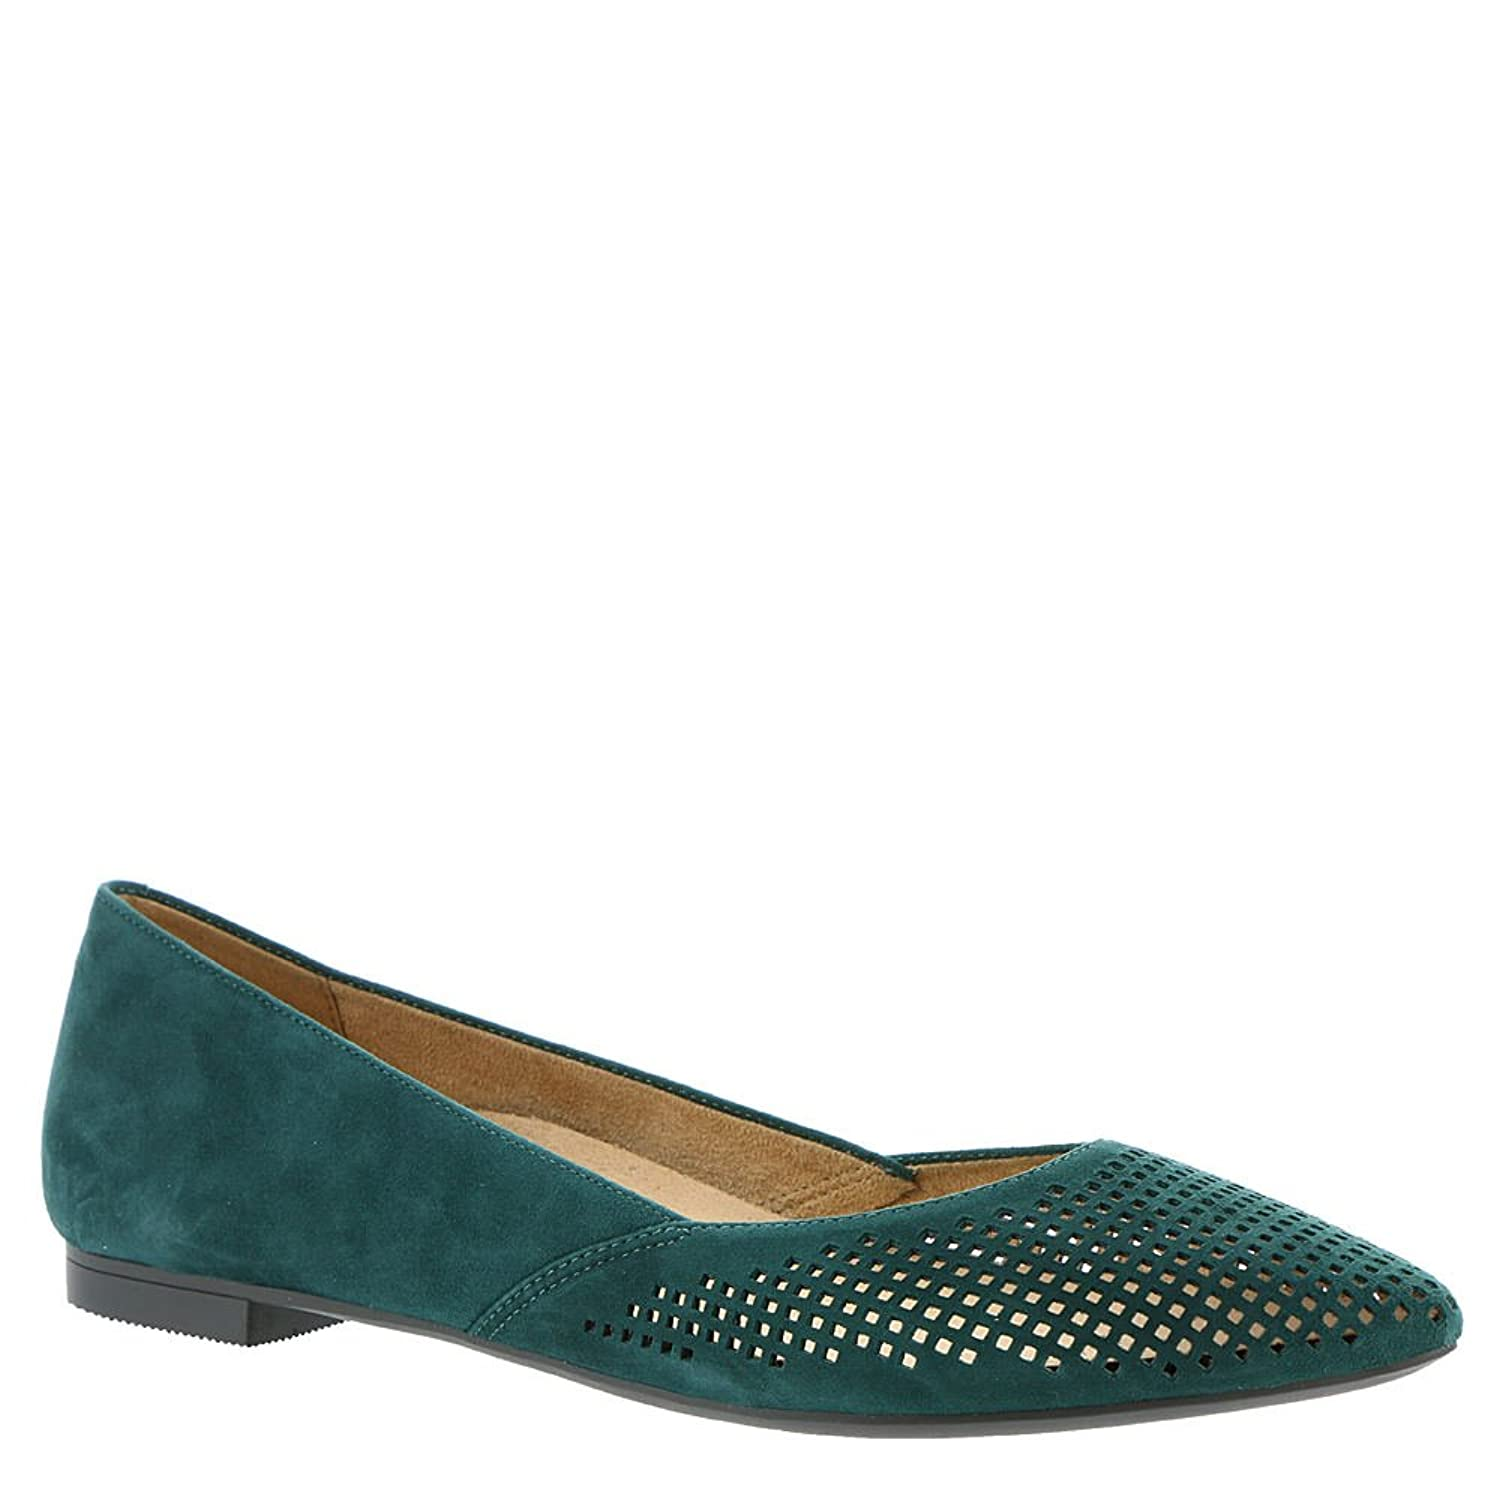 Womens, Posey Pointed Toe Fashion Flats Teal 9.5 Vionic